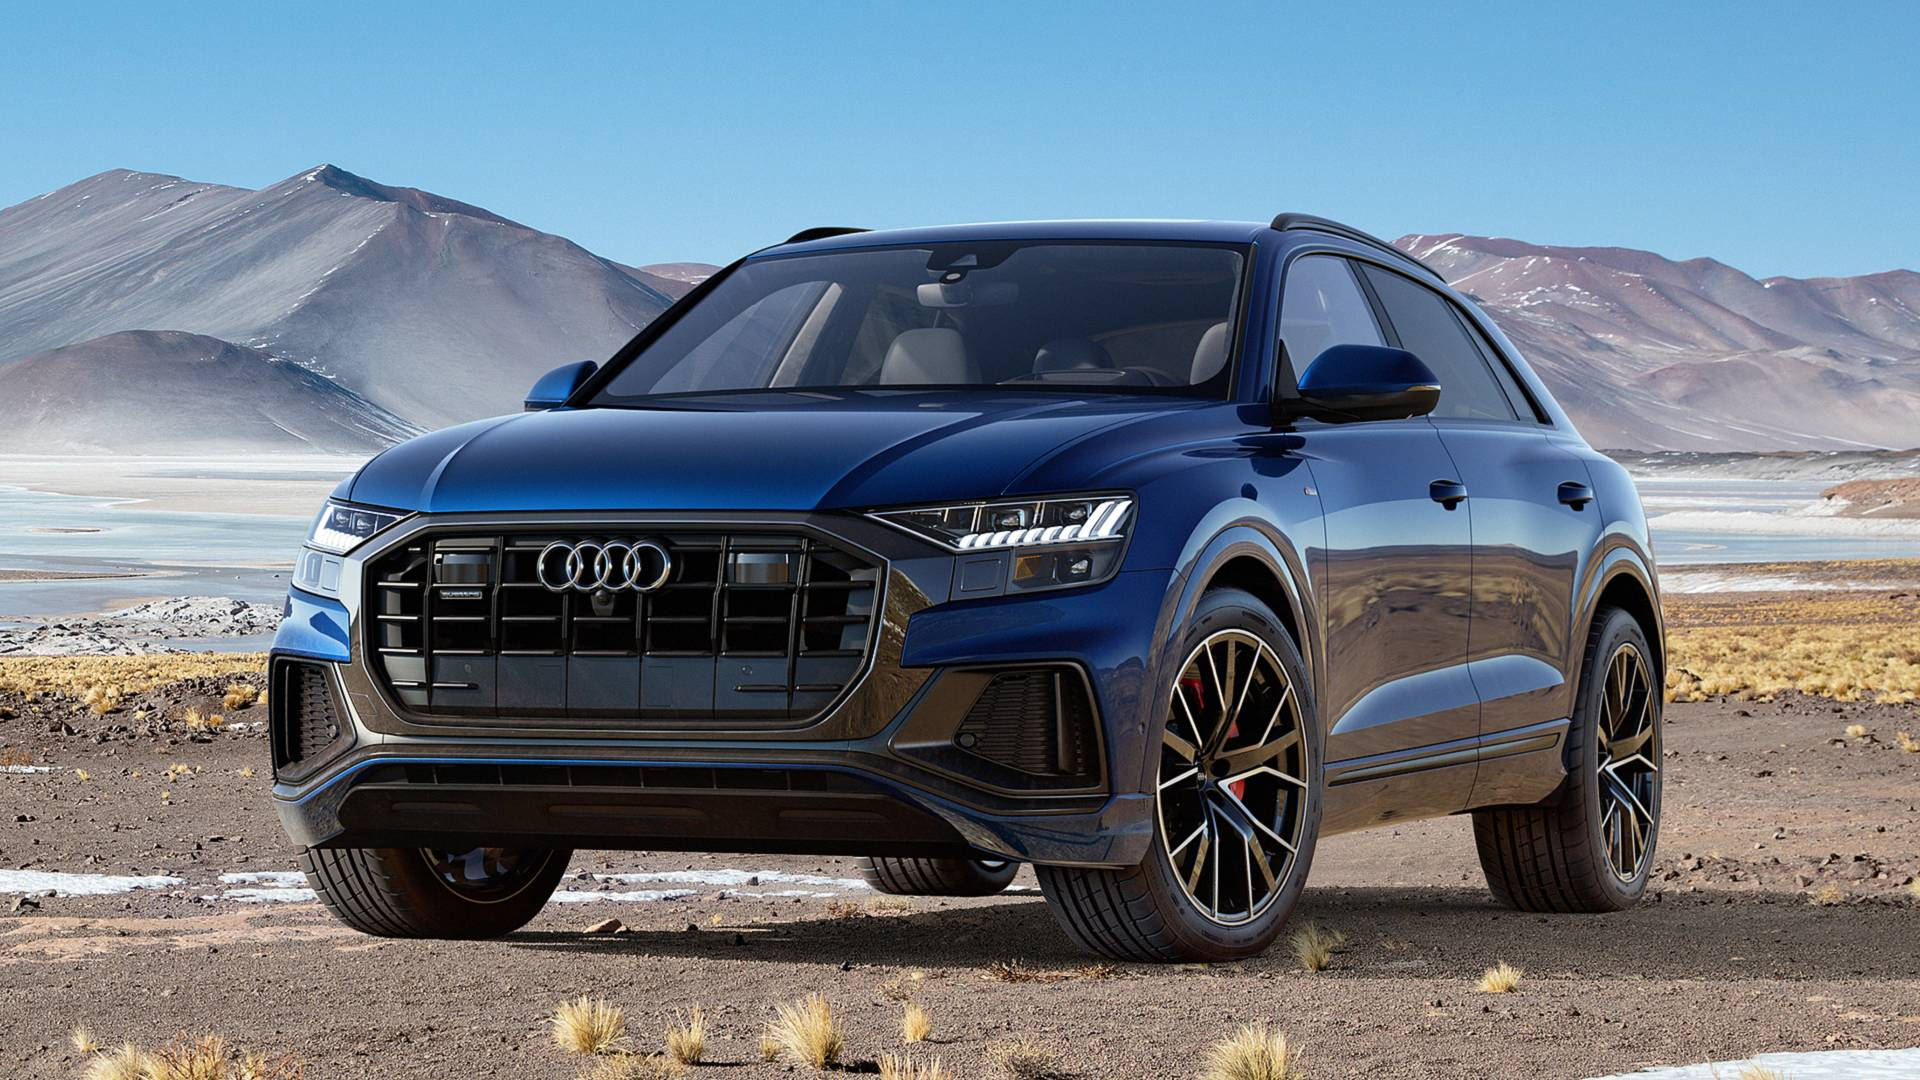 2020 Audi Q8 Design, Interior, And Price >> 2019 Audi Q8 Priced From 67 400 With Mild Hybrid V6 Power